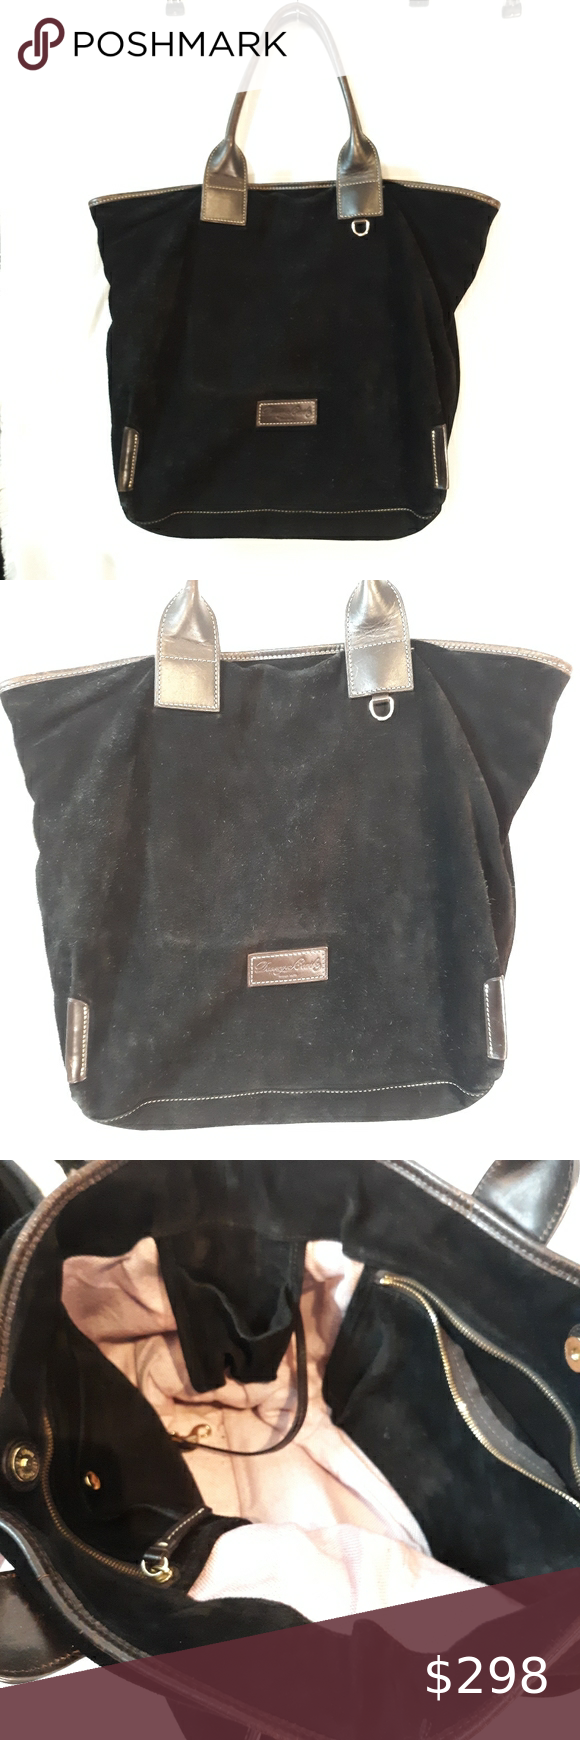 Dooney Bourke Suede And Leather Tote